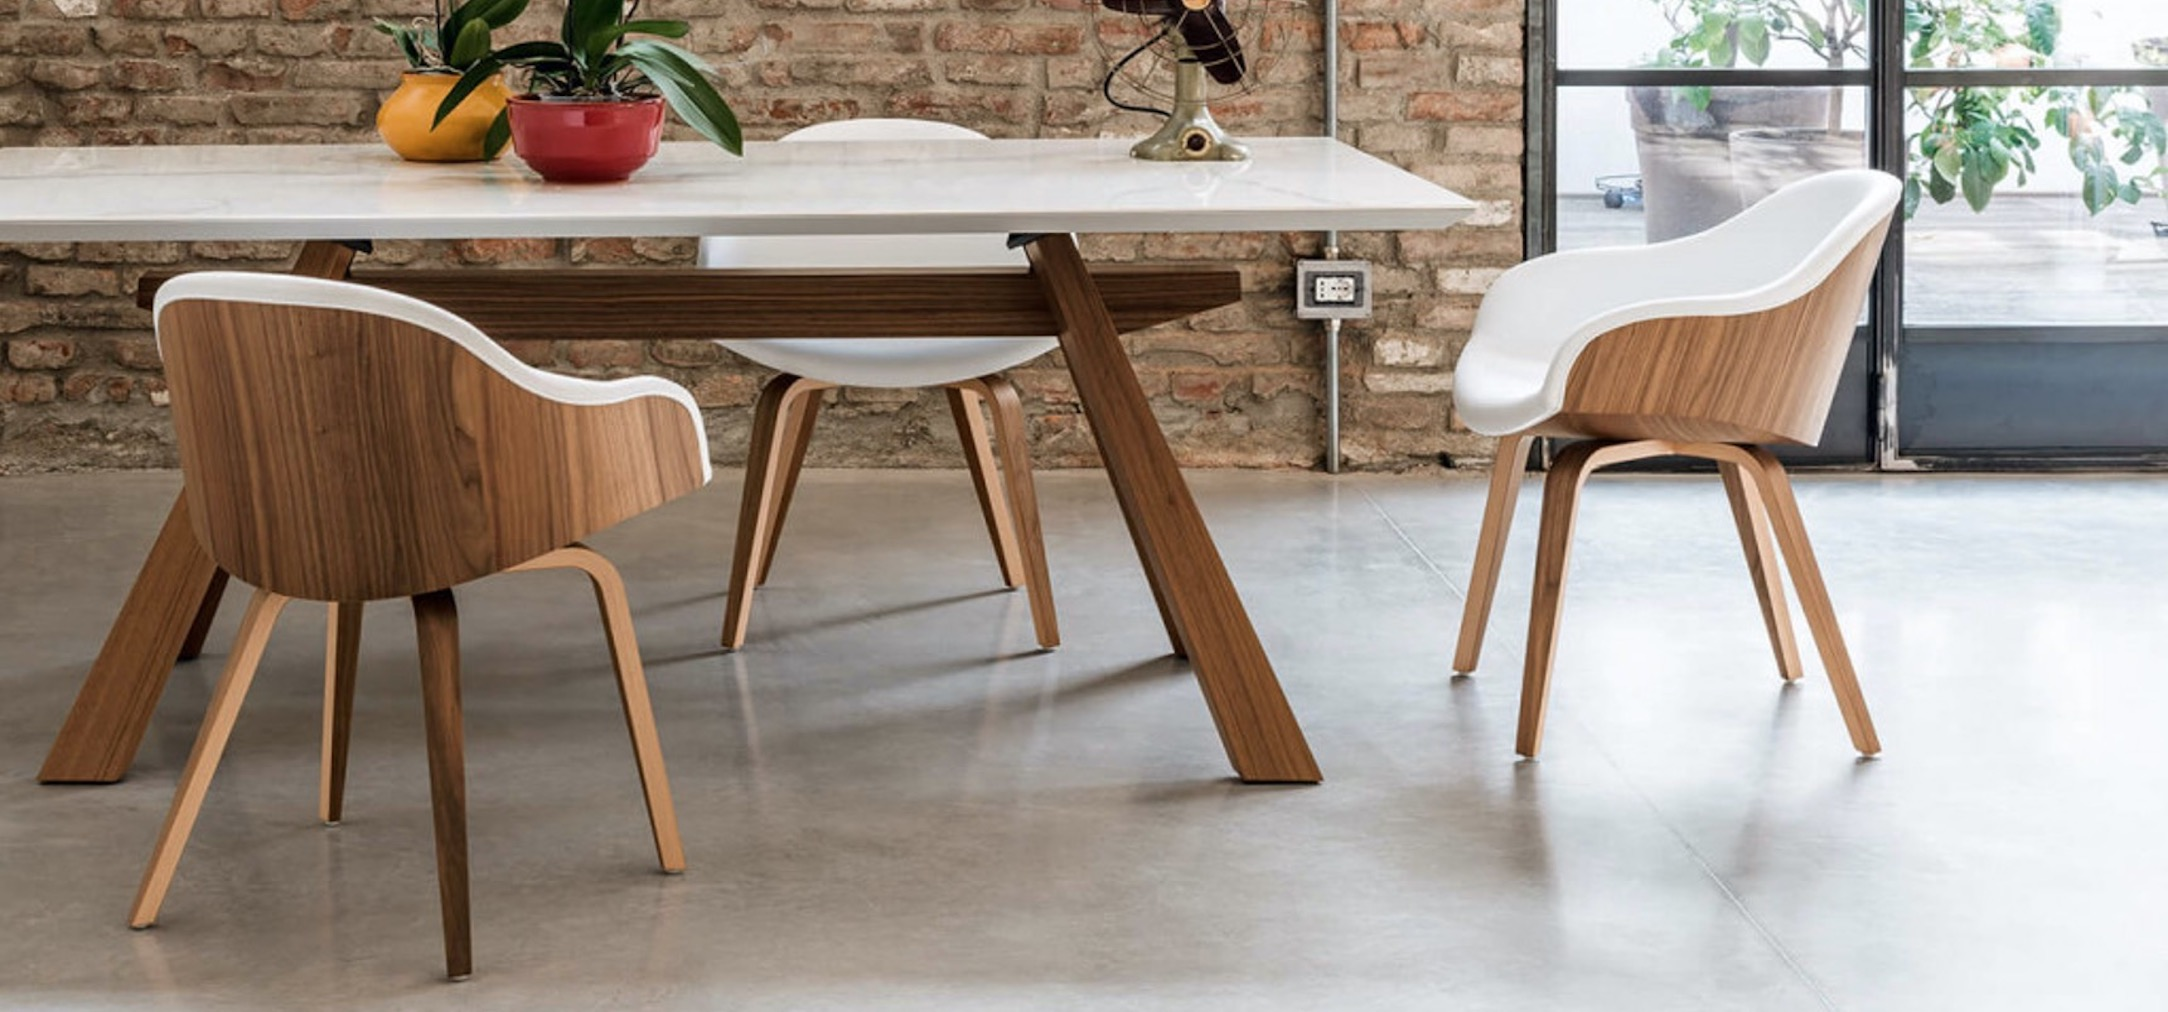 In Stock + Short Lead Times - Dining chairs